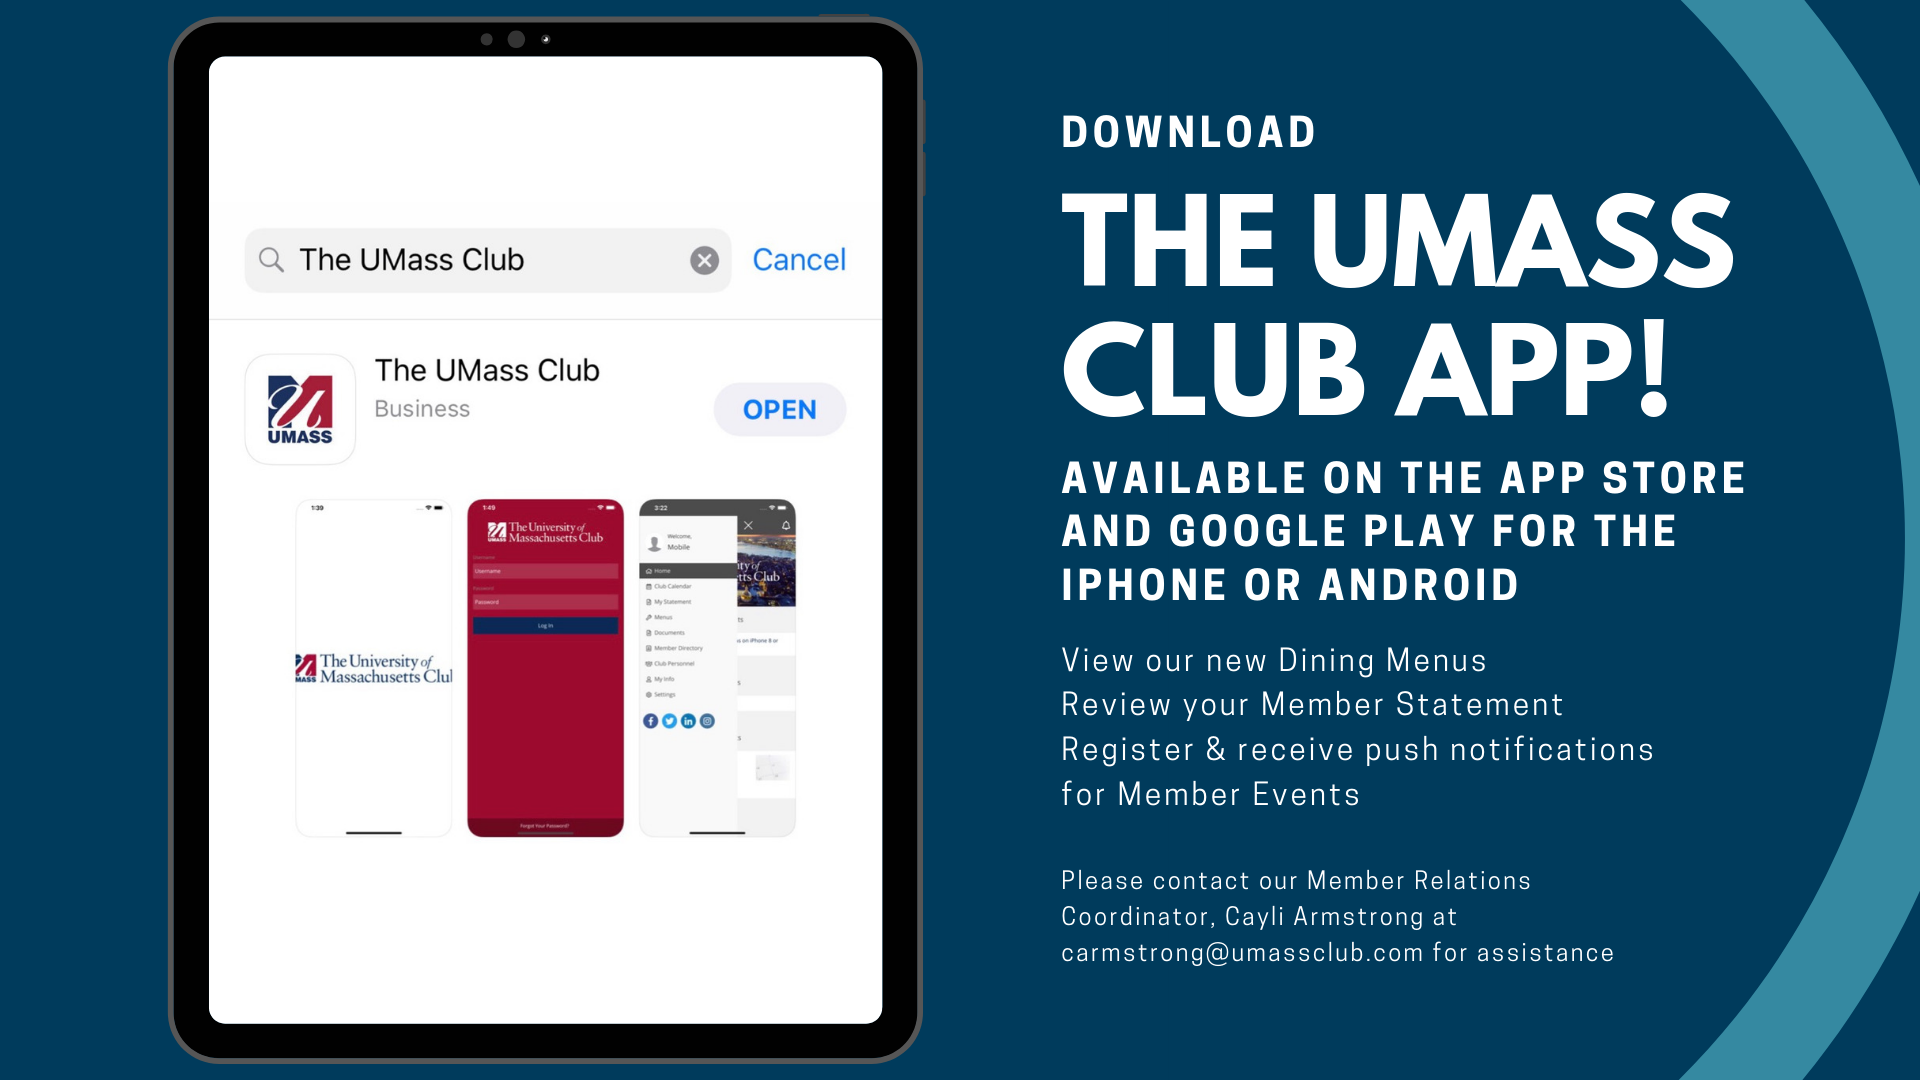 The UMass Club App